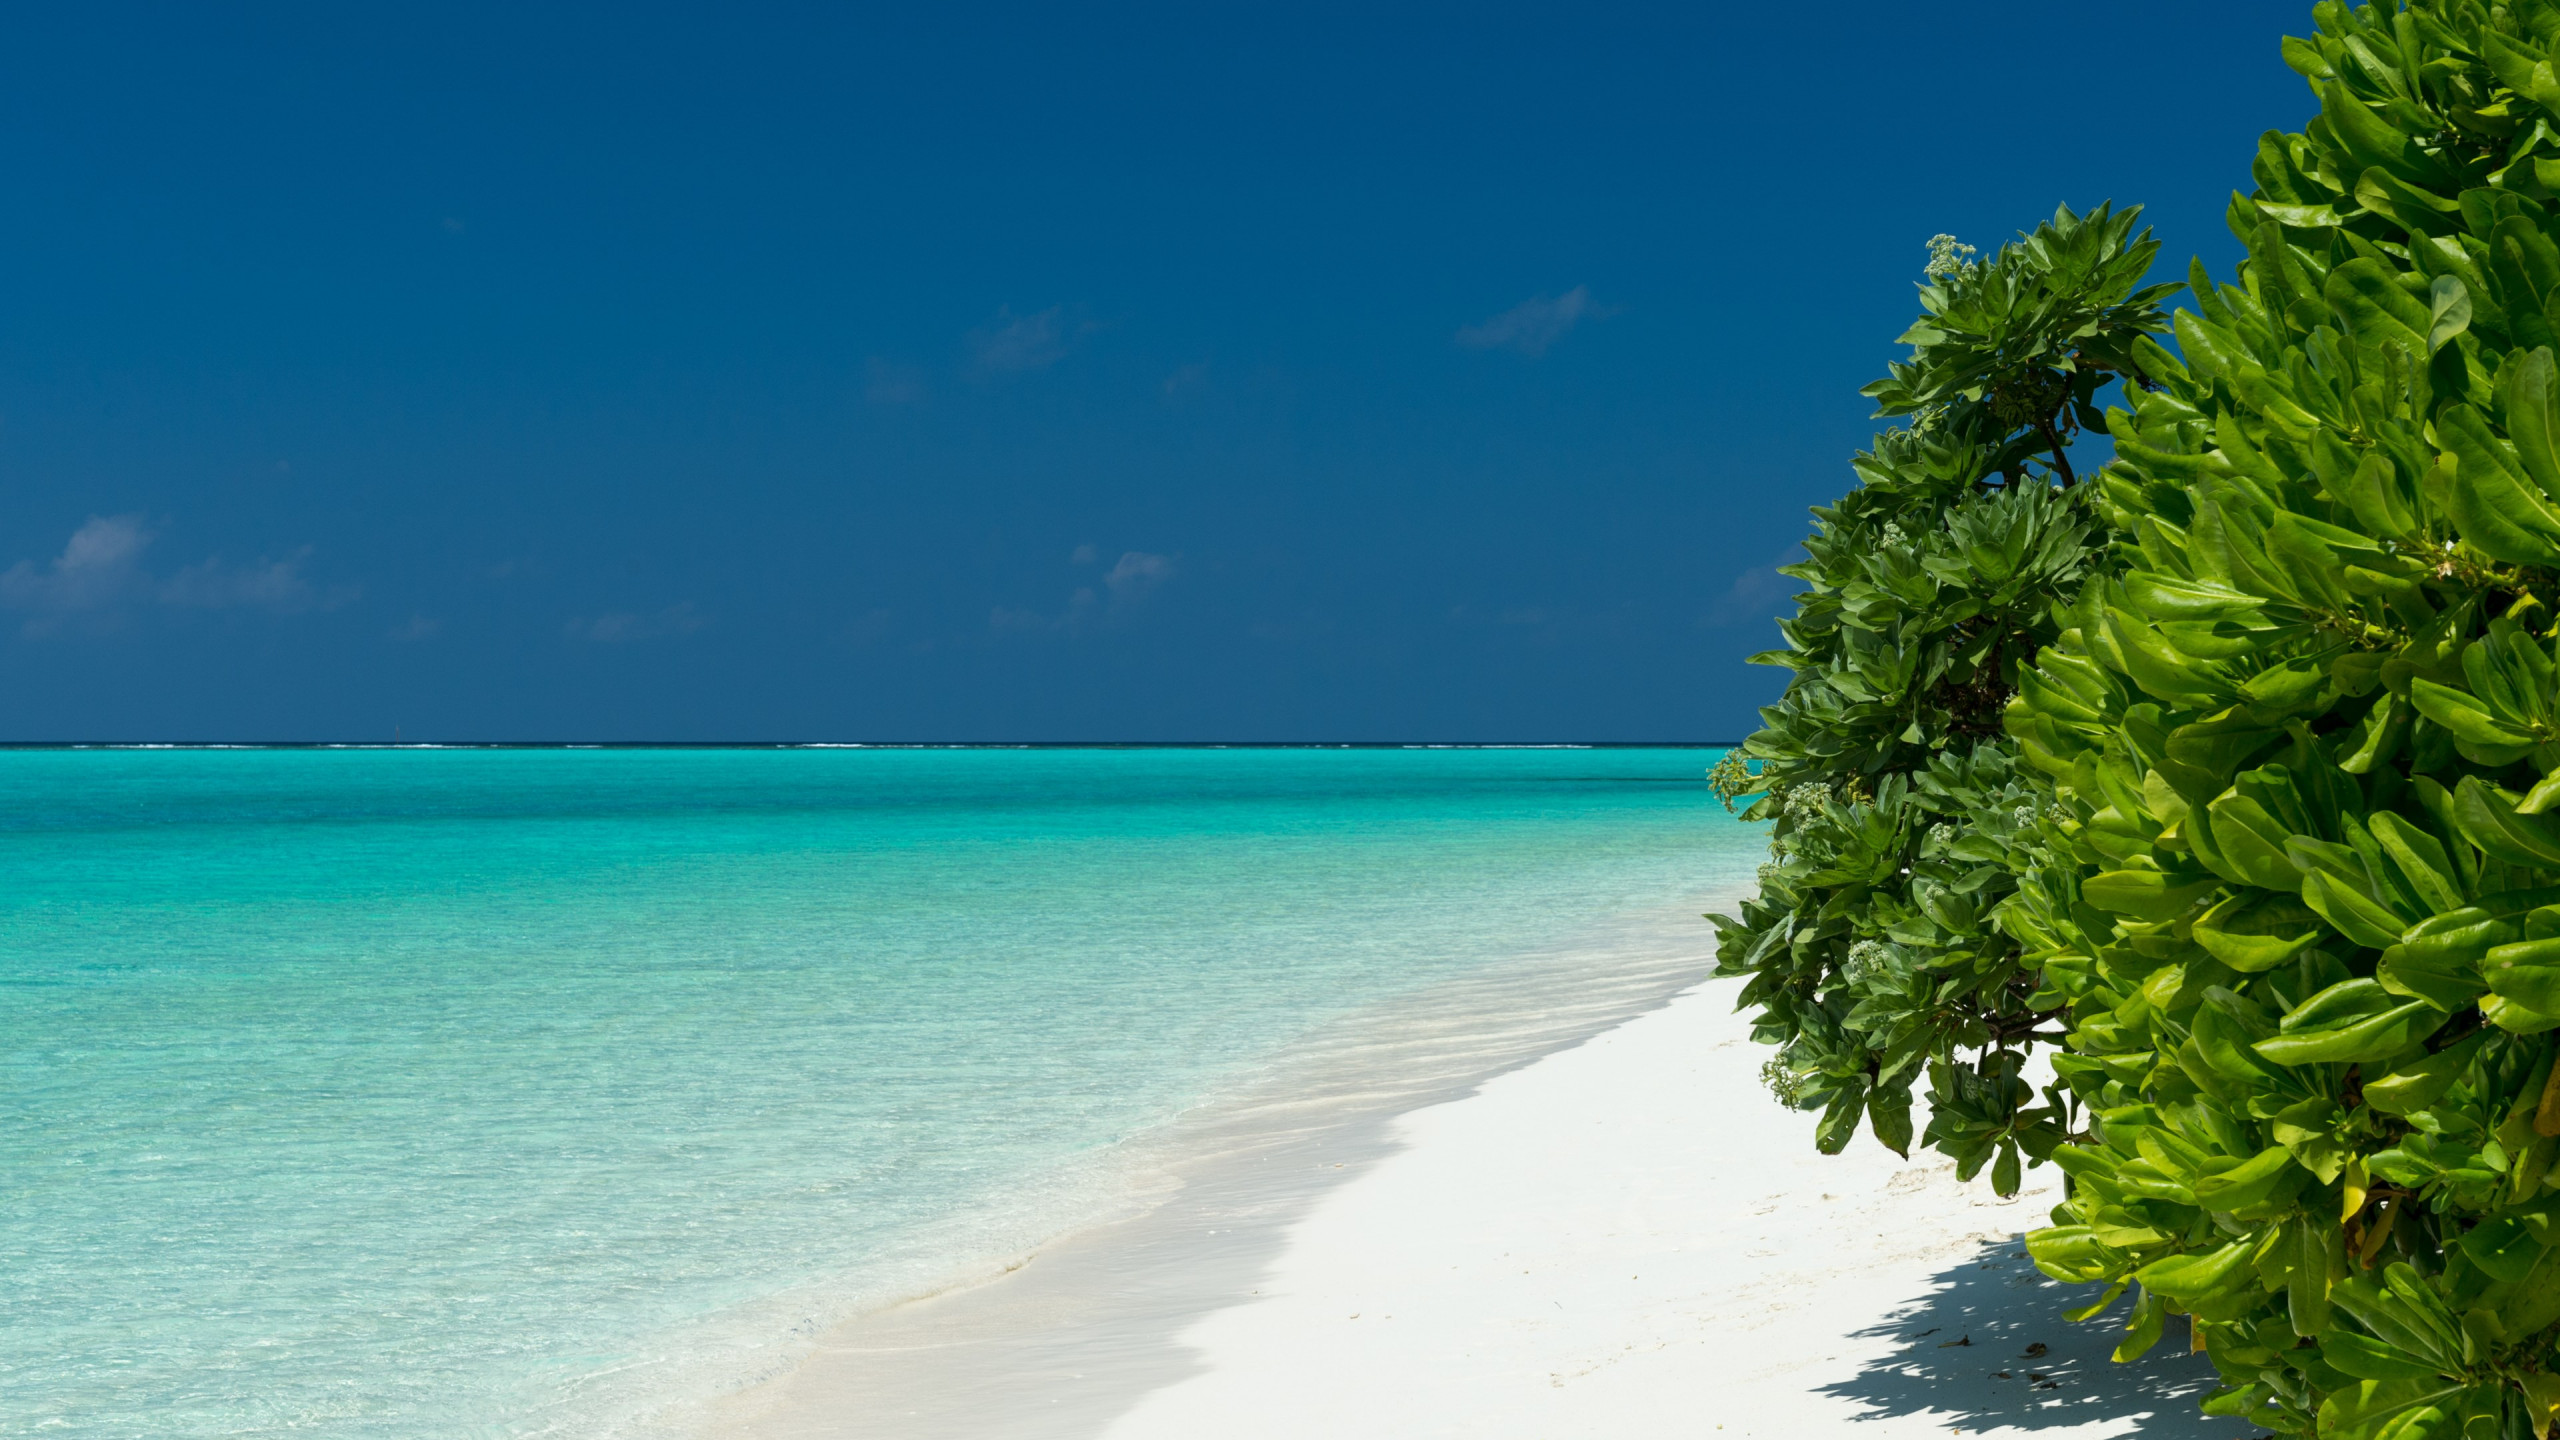 Turquoise waters of Maldives wallpaper 2560x1440